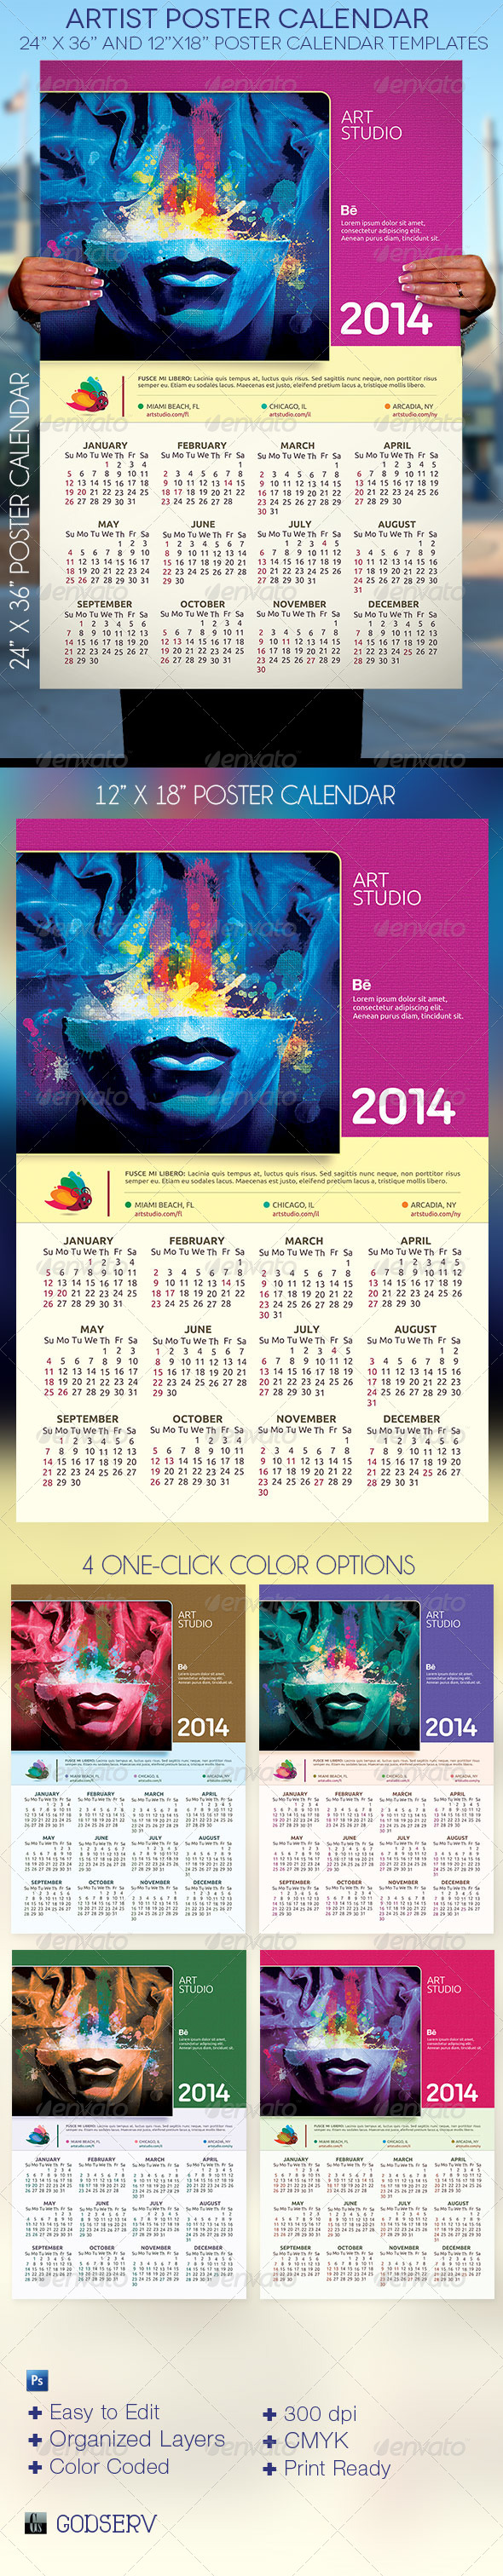 Artist Poster Calendar Template - Calendars Stationery